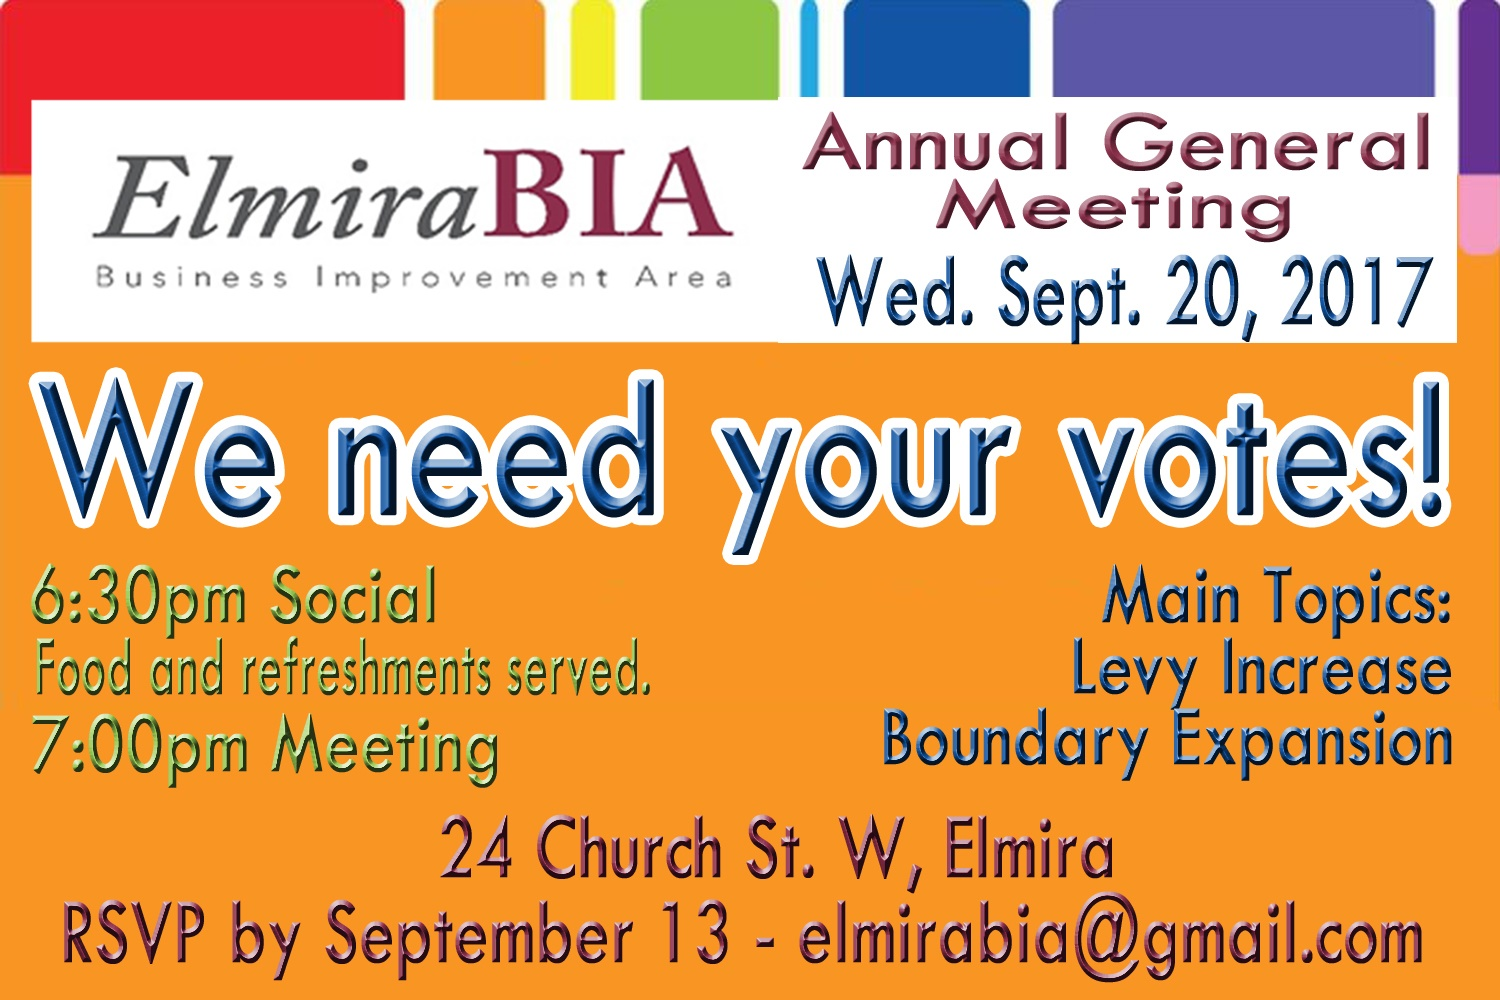 Elmira BIA Annual General Meeting Invitation